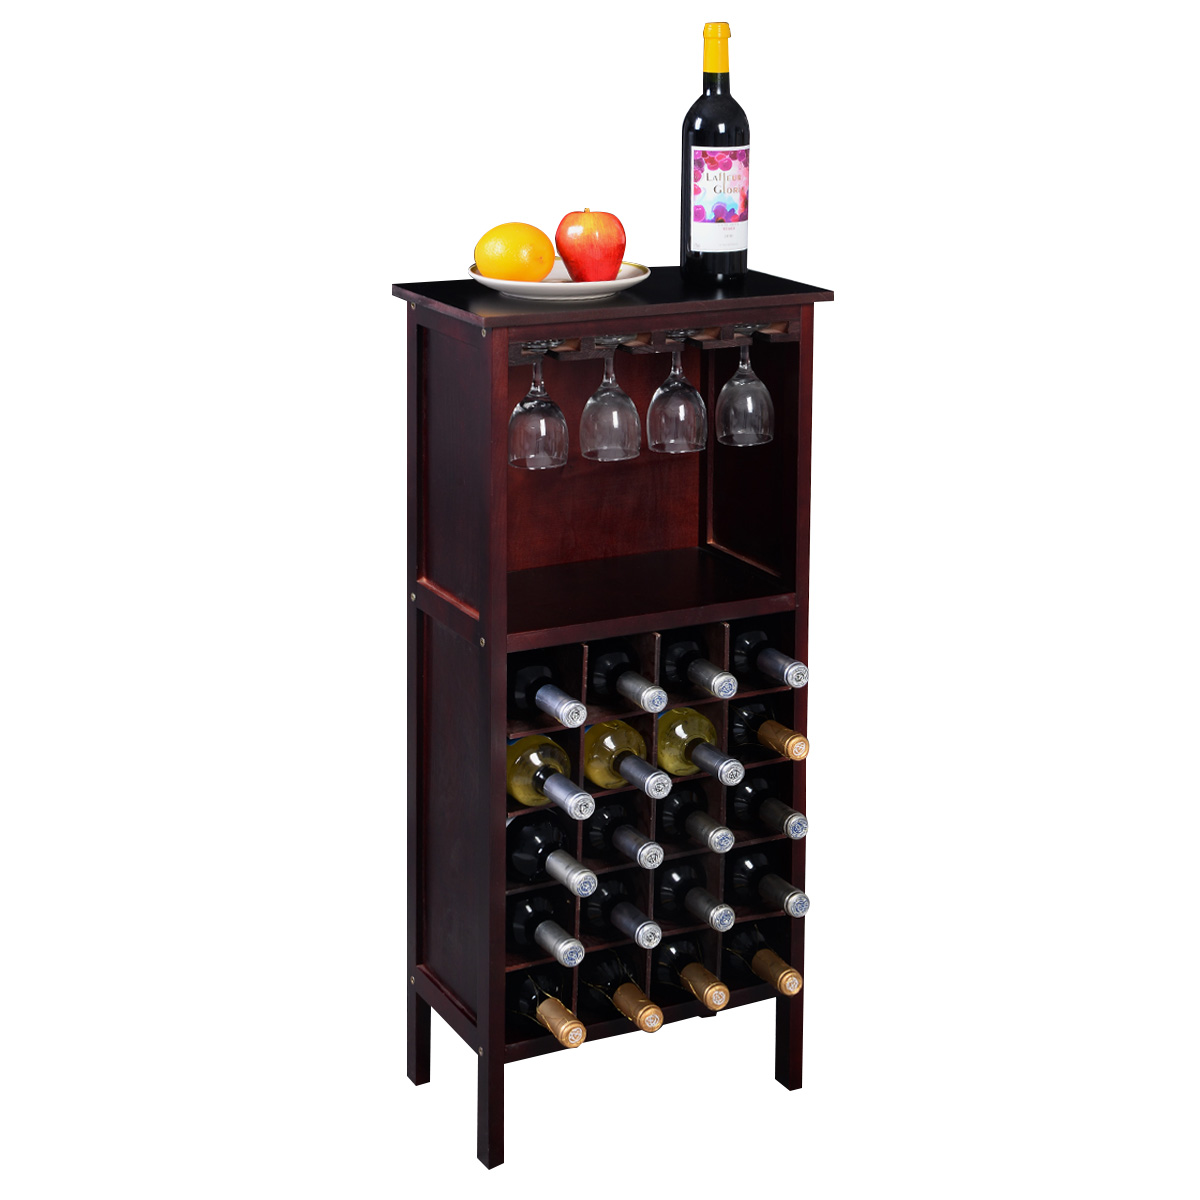 Costway Wood Wine Rack Holder Storage Shelf Display w  Glass Hanger (20-Bottle(Cabinet)) by Costway